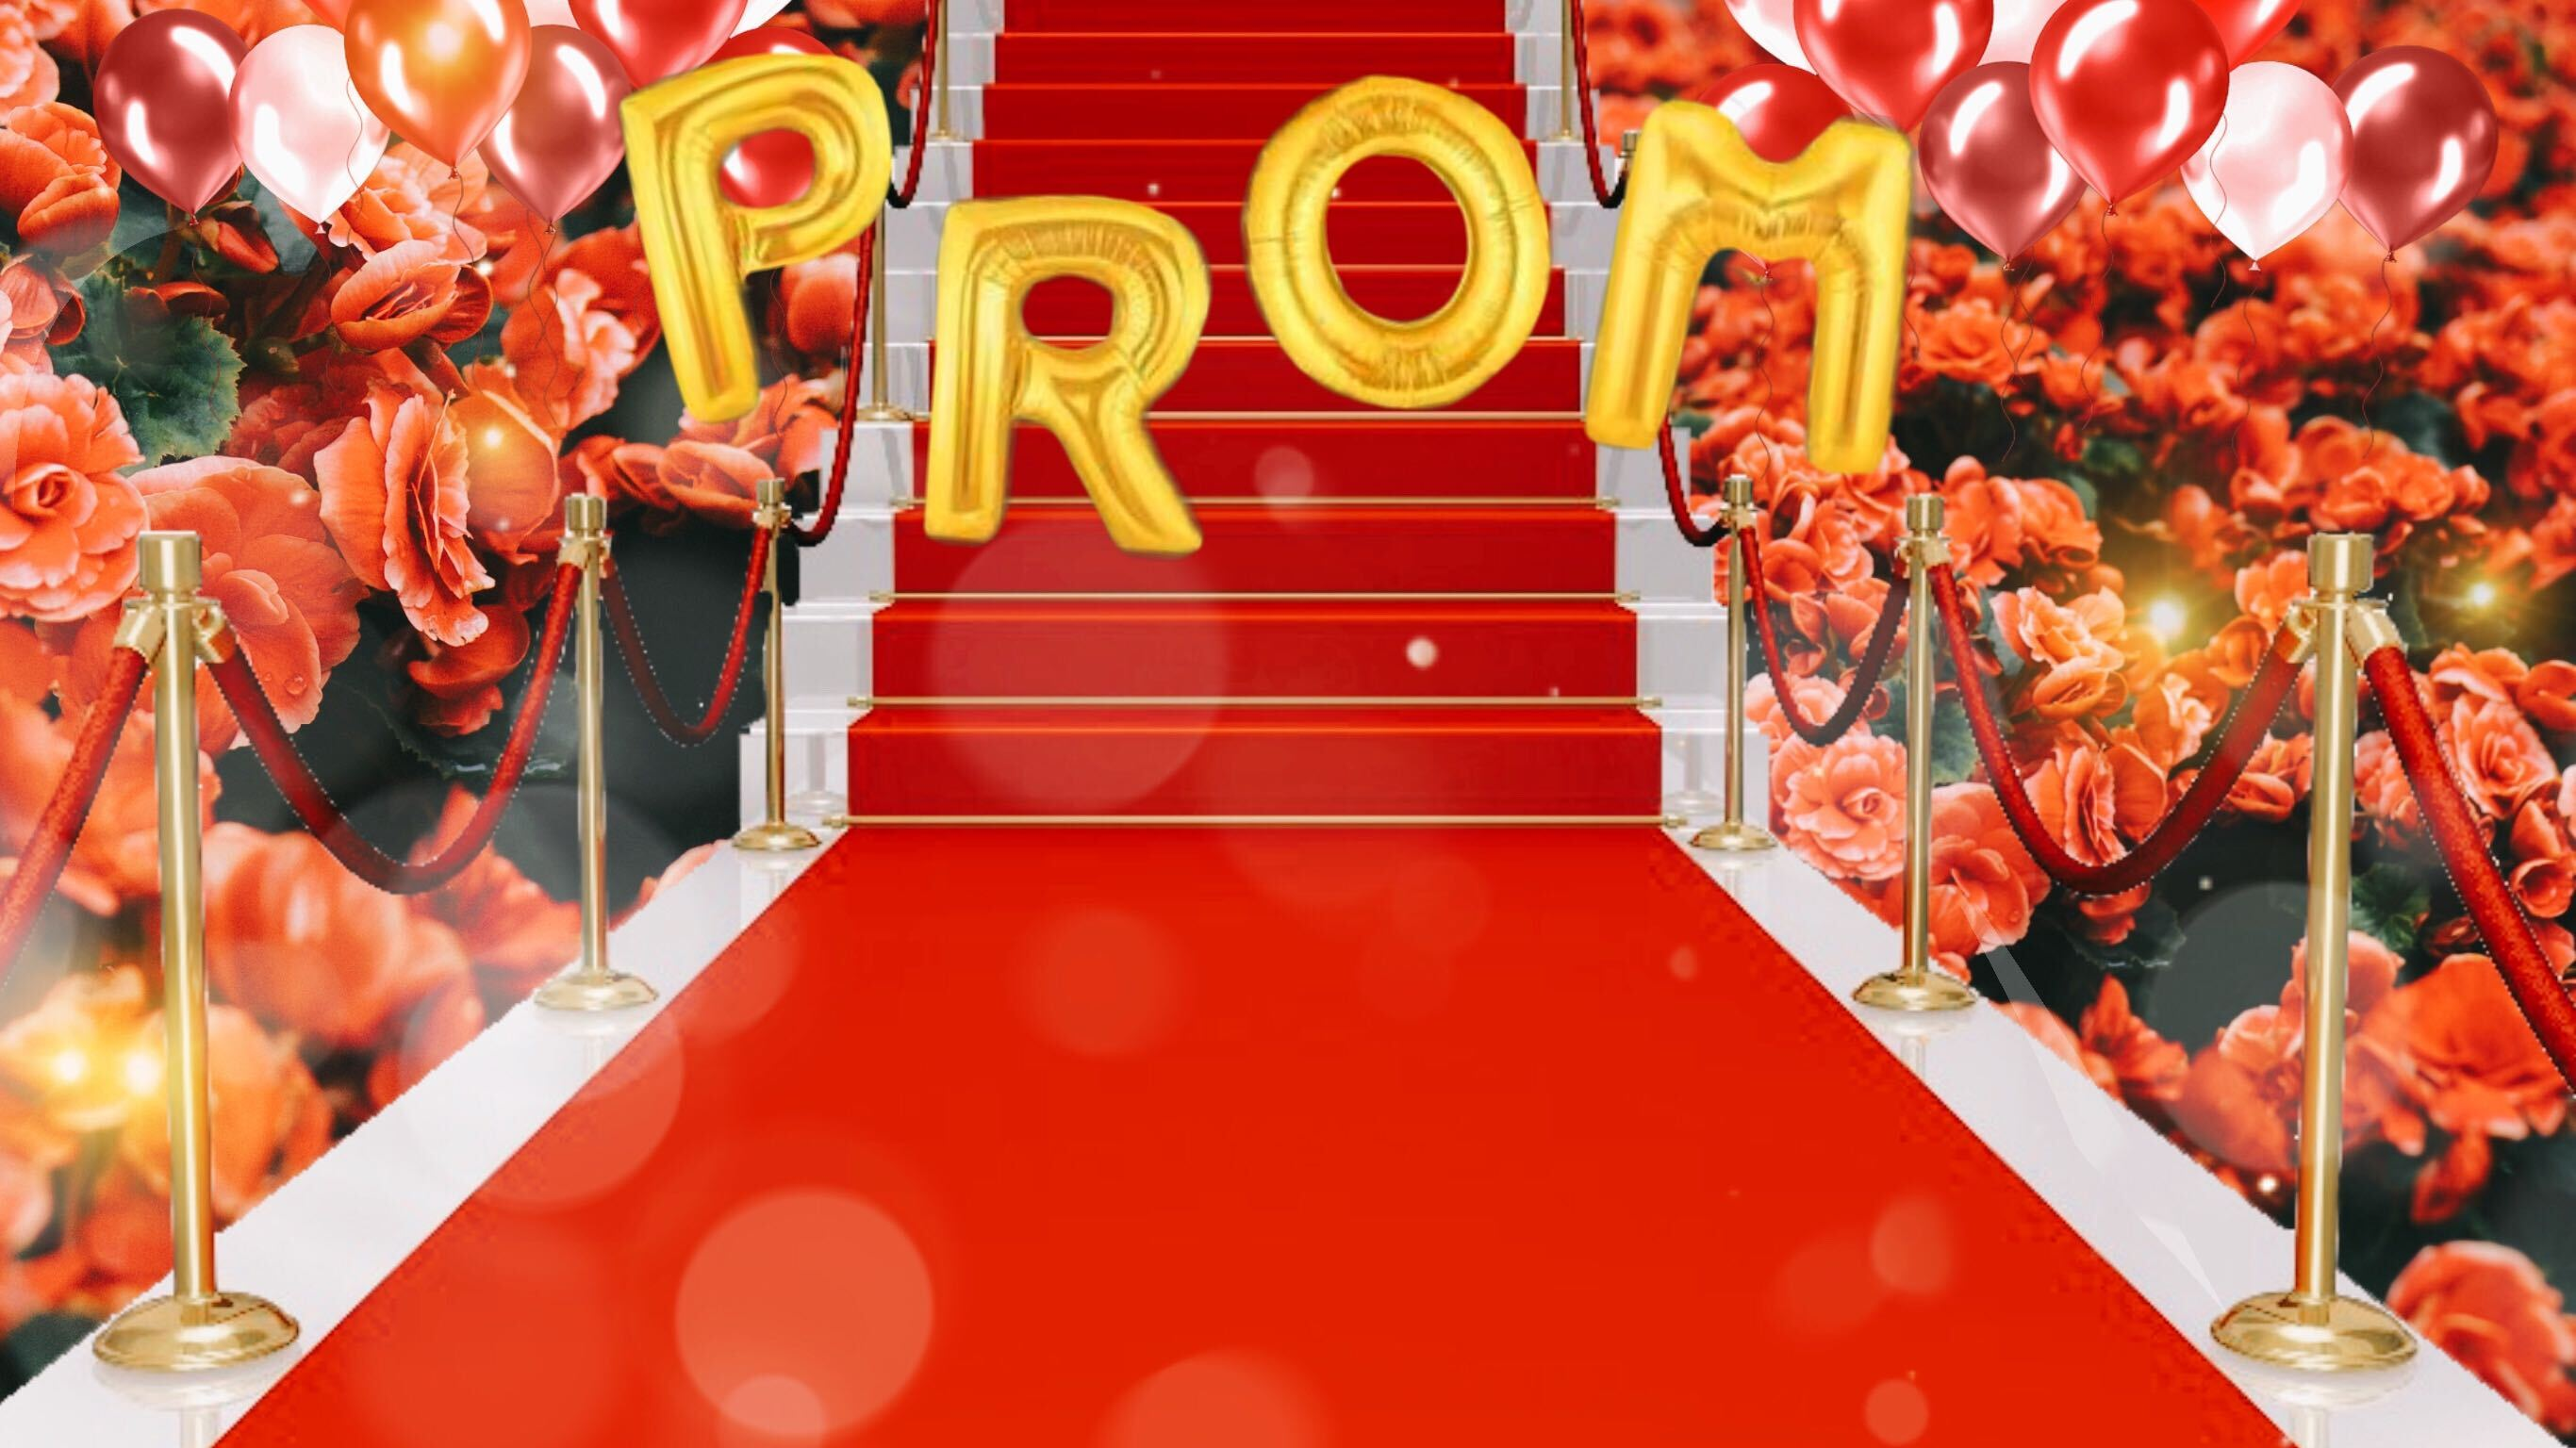 Red carpet zoom background